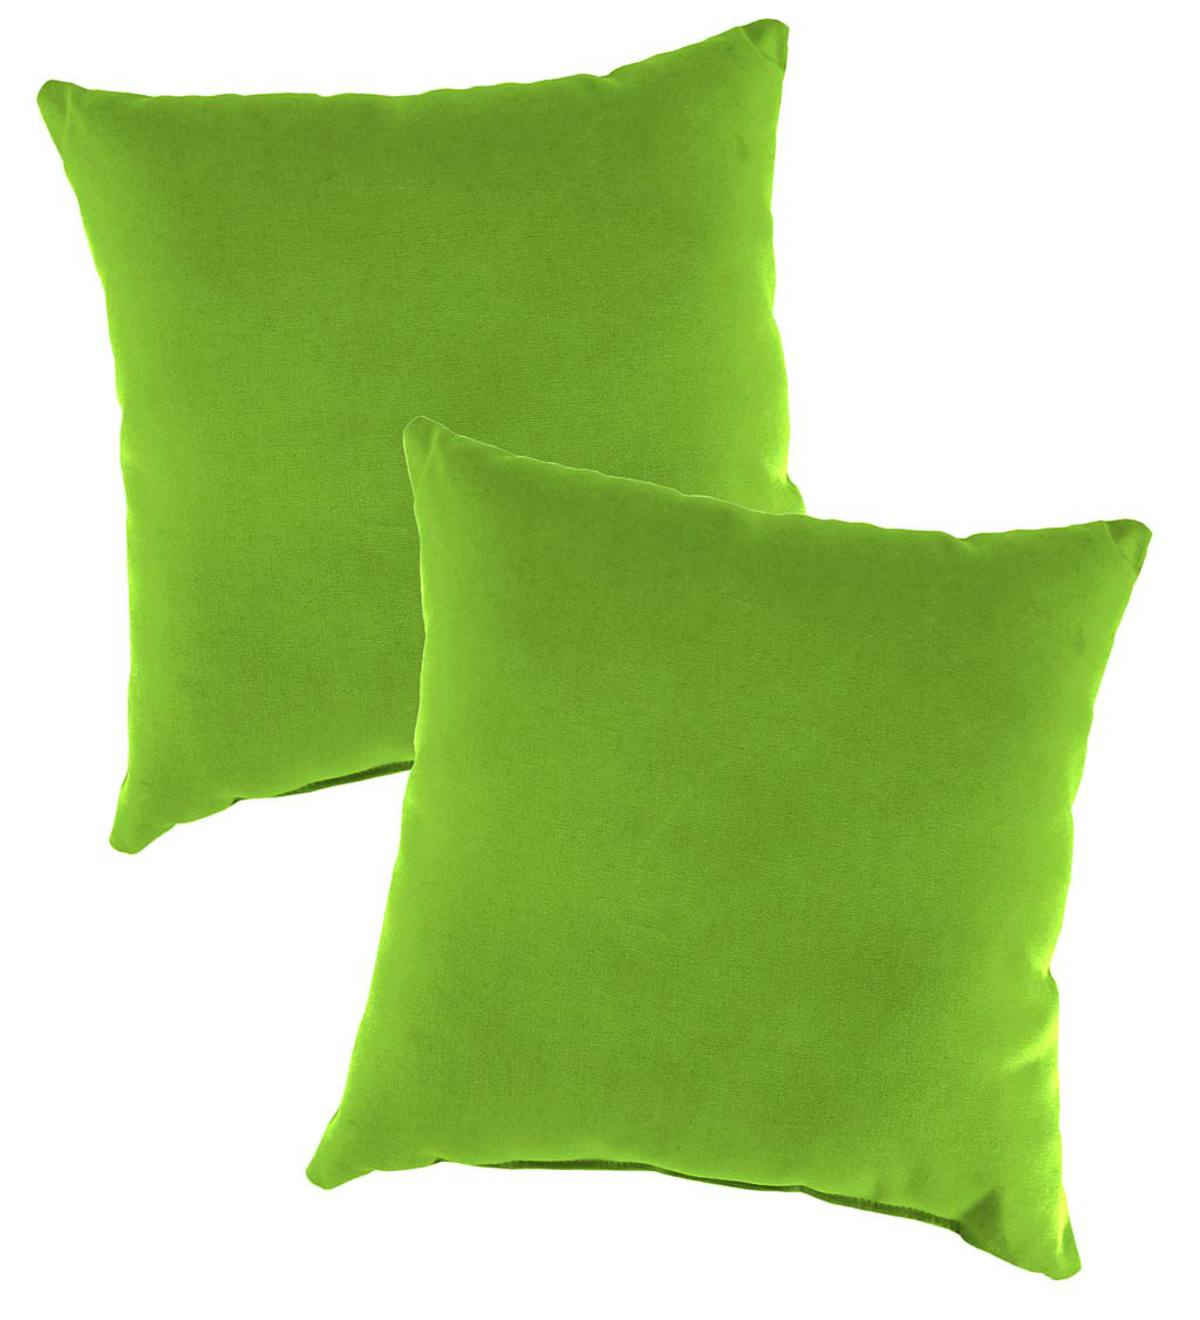 Set of 2 Replacement Pillows for Rope Hammock Swing